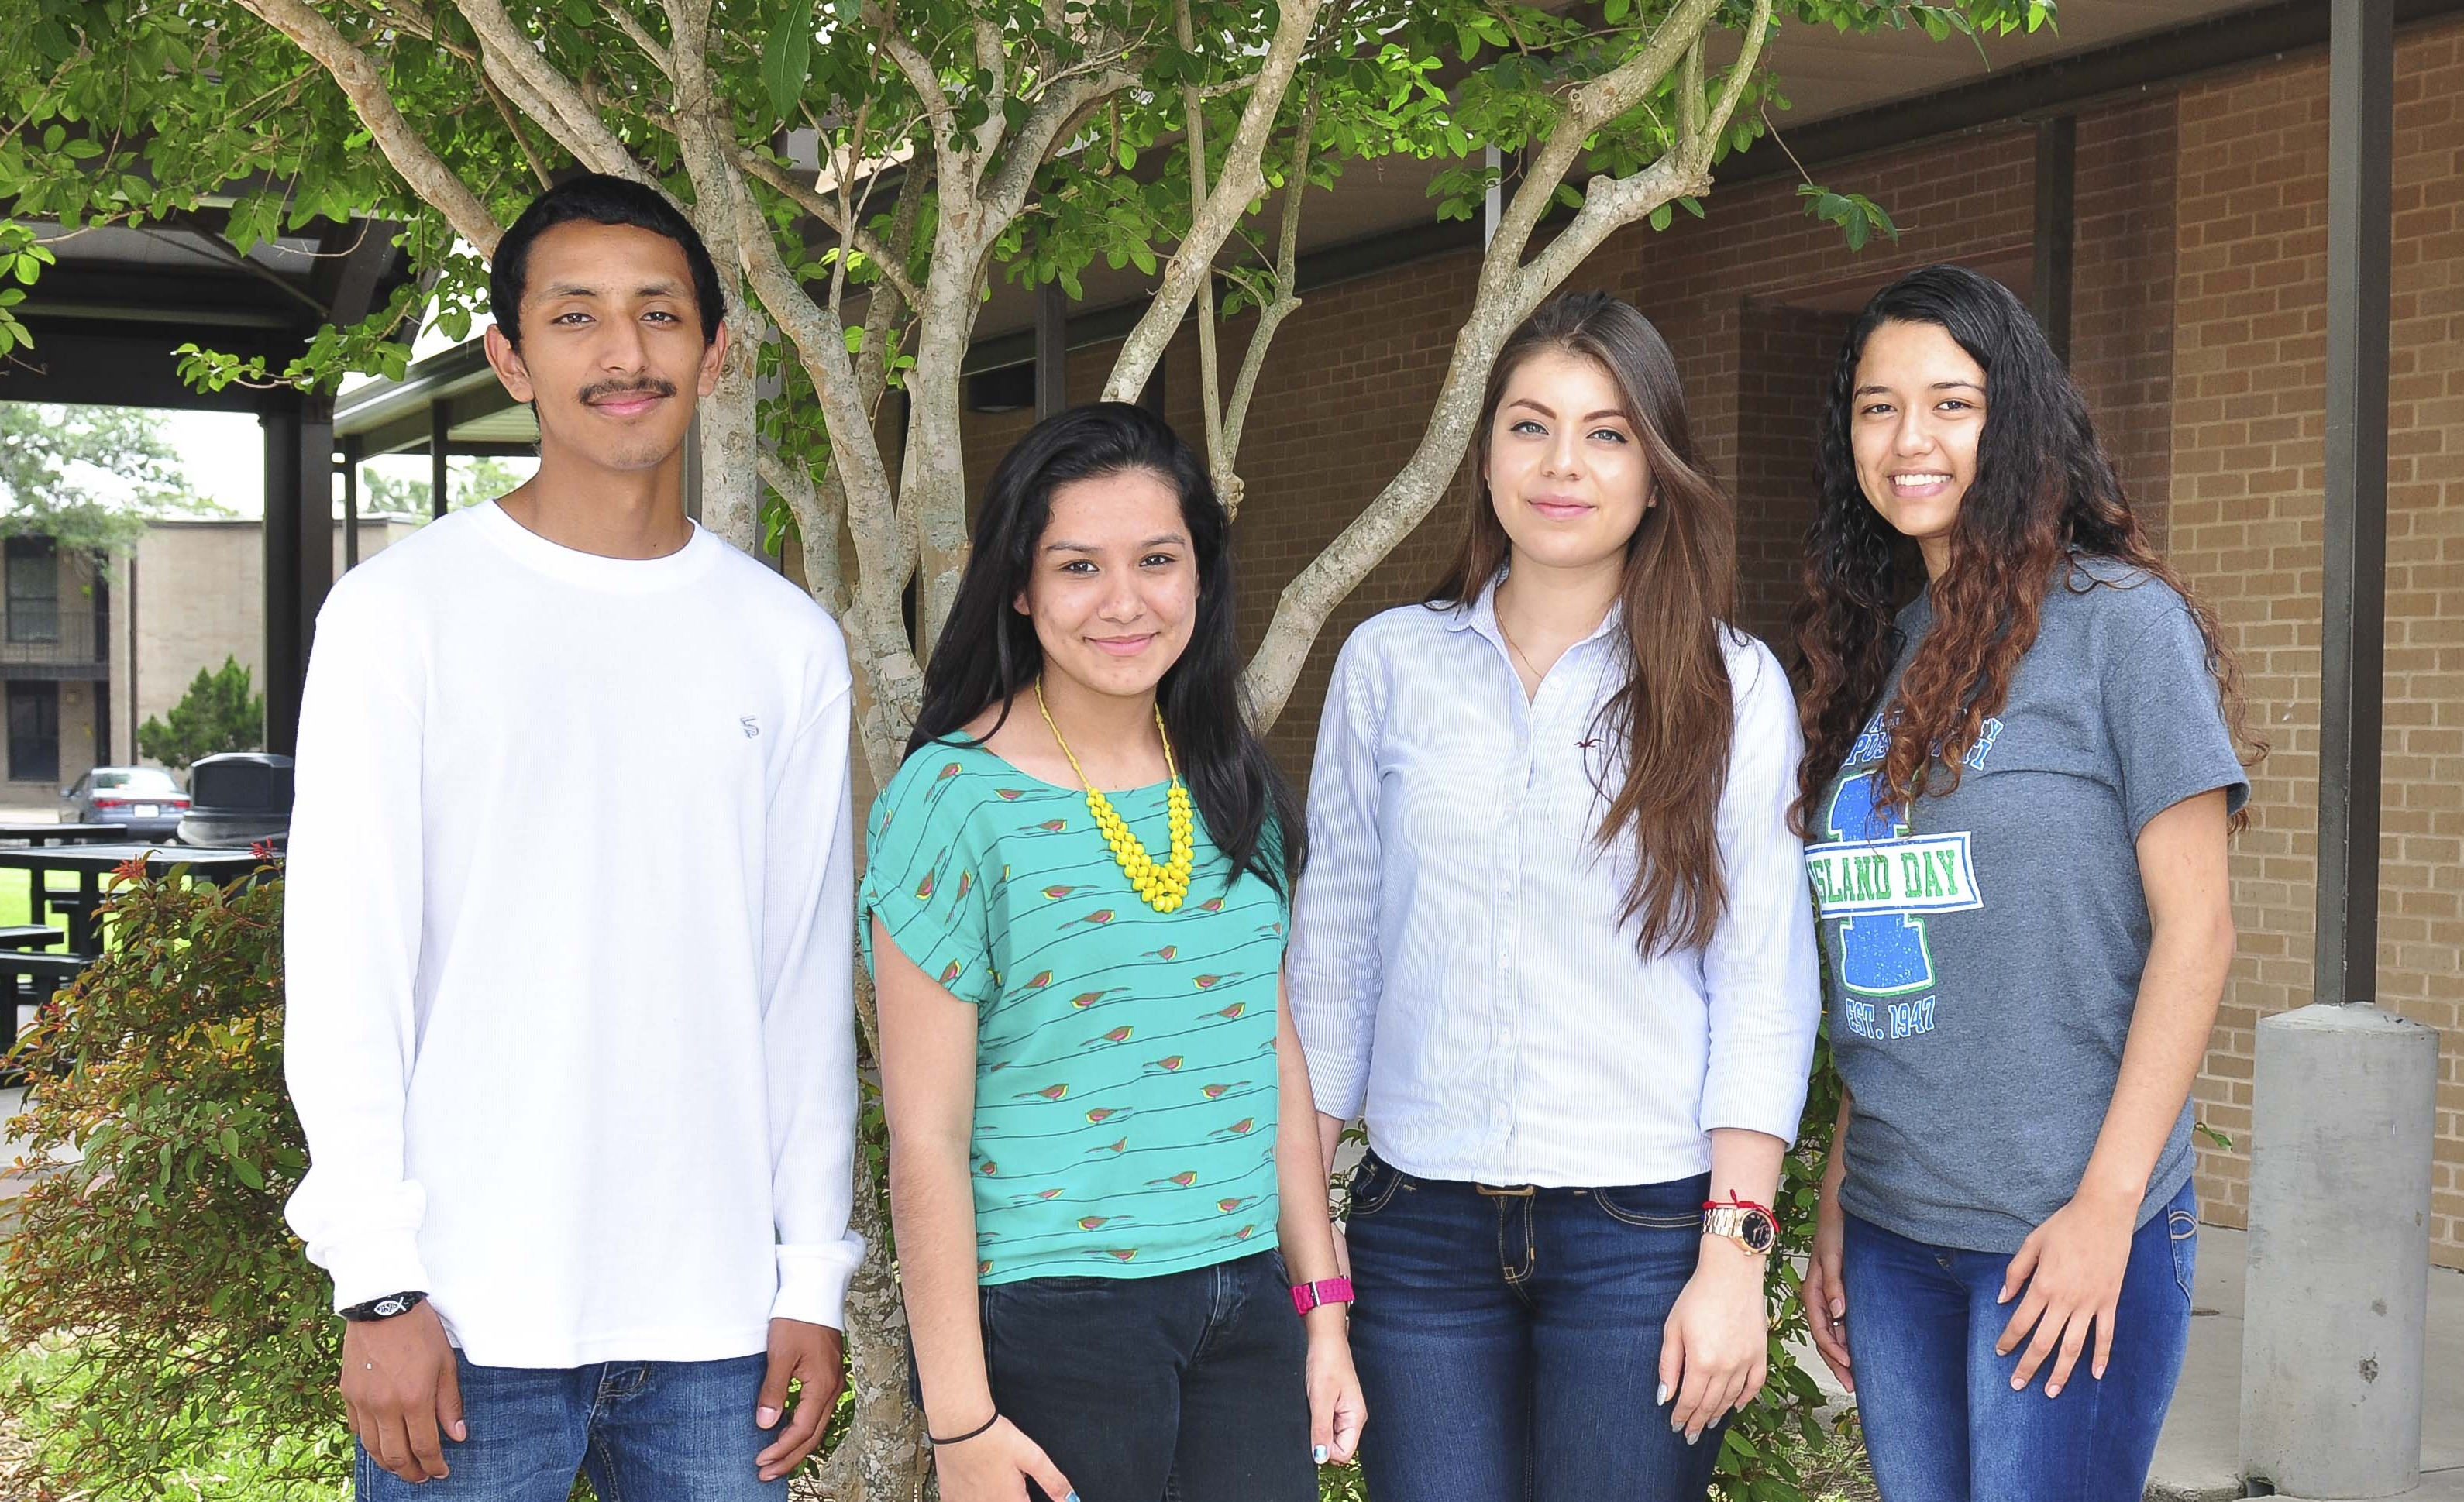 Setting students up for success in post-secondary education